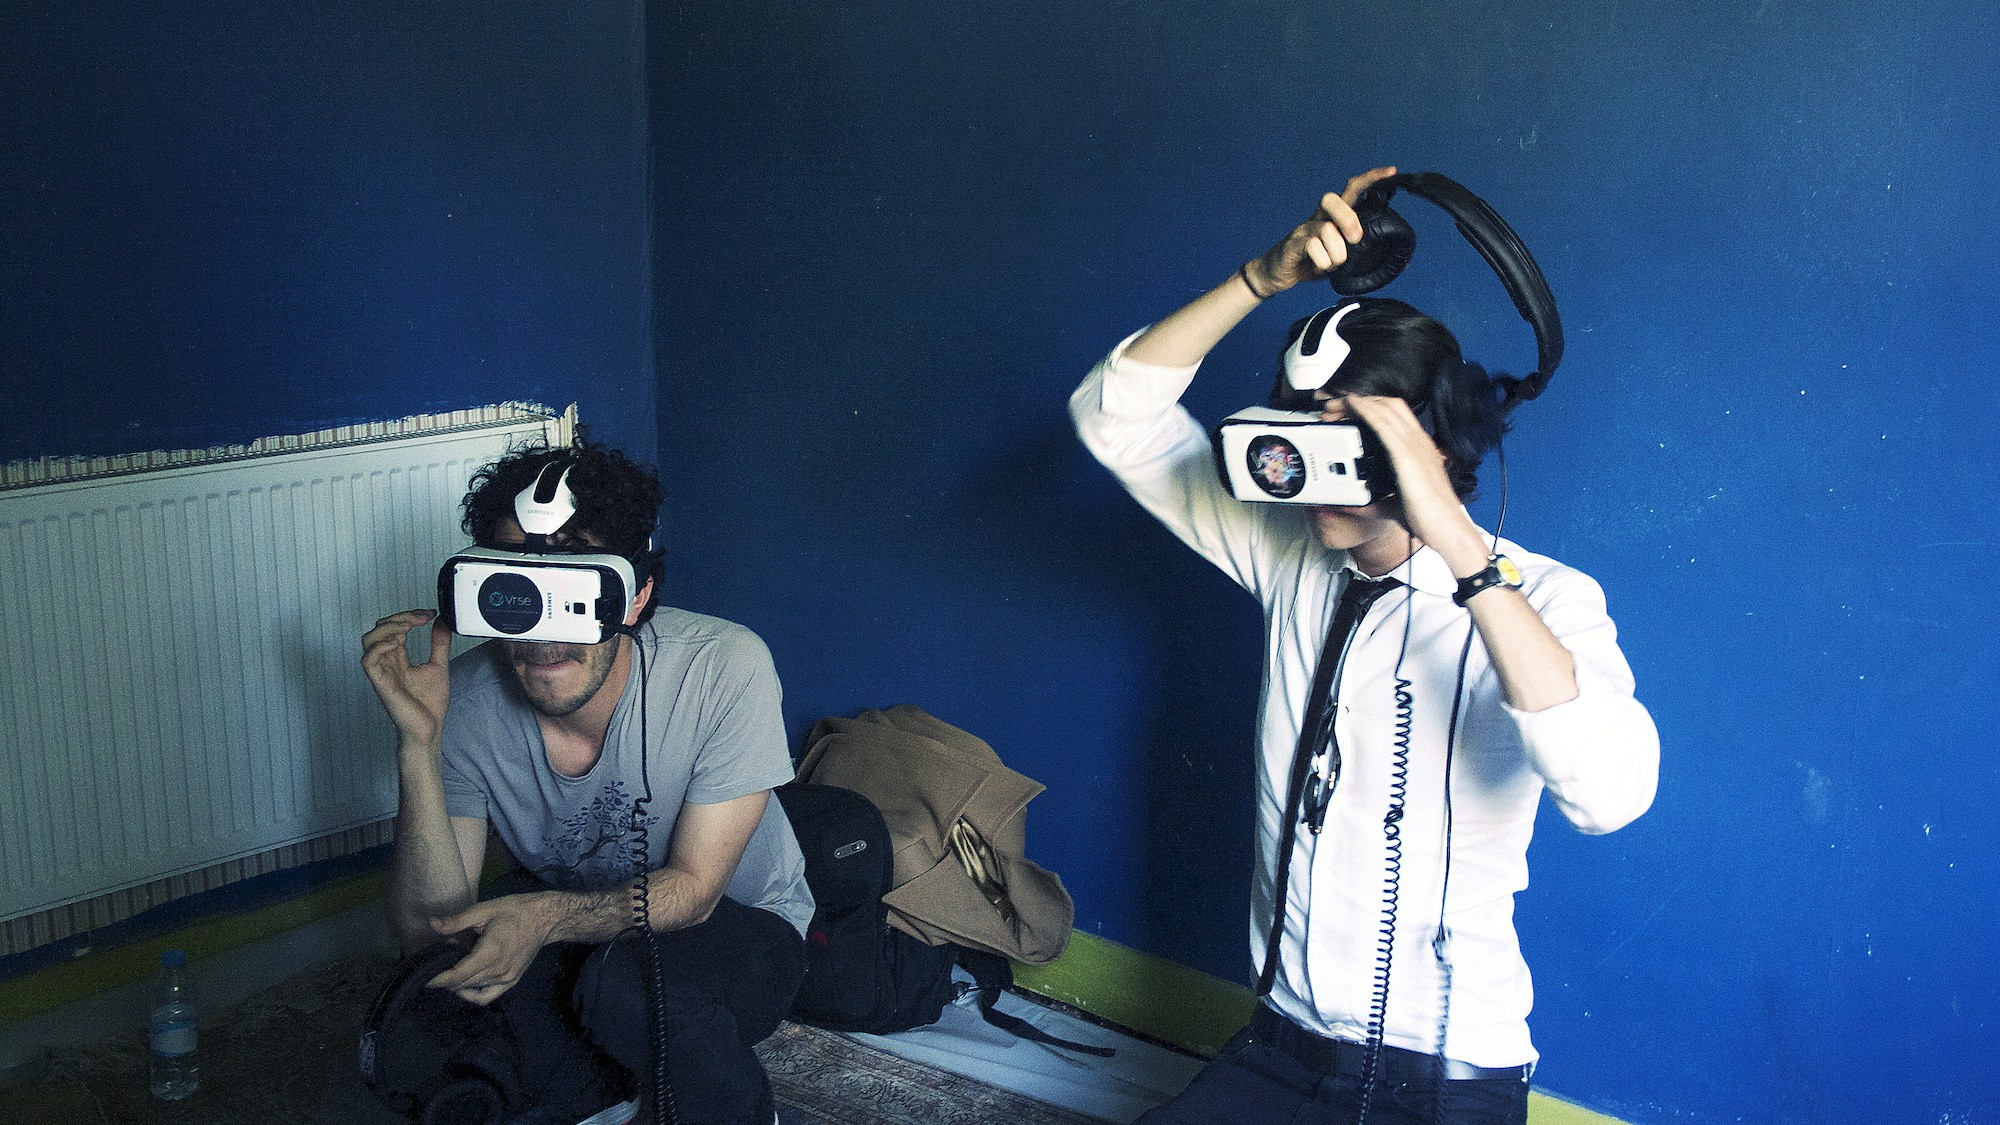 Multisensory Cinema Adds Smell and Touch to VR Worlds